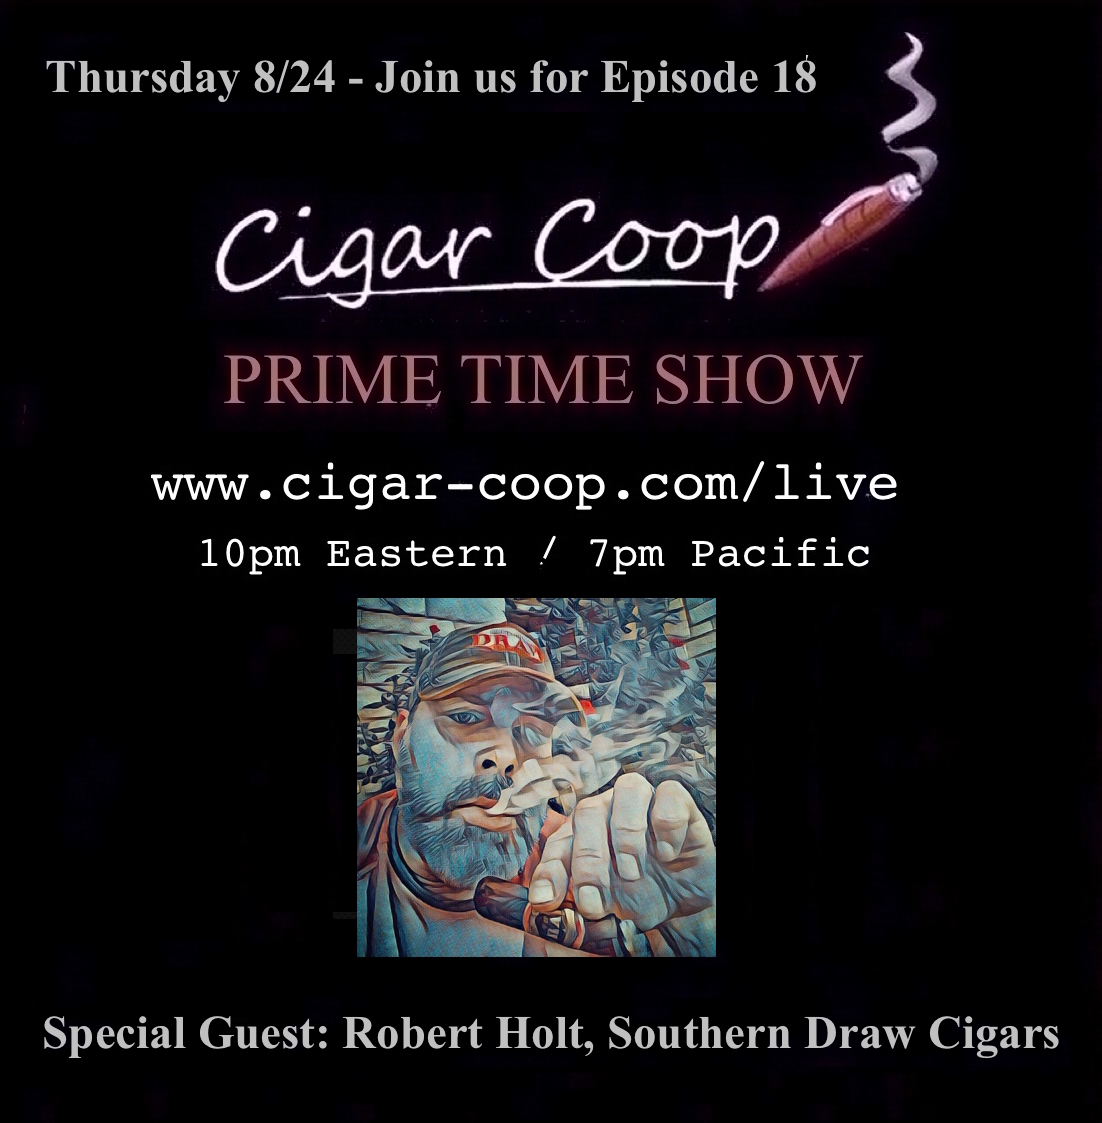 Announcement: Prime Time Show Episode 18: 8/24/17 10pm Eastern, 7pm Pacific